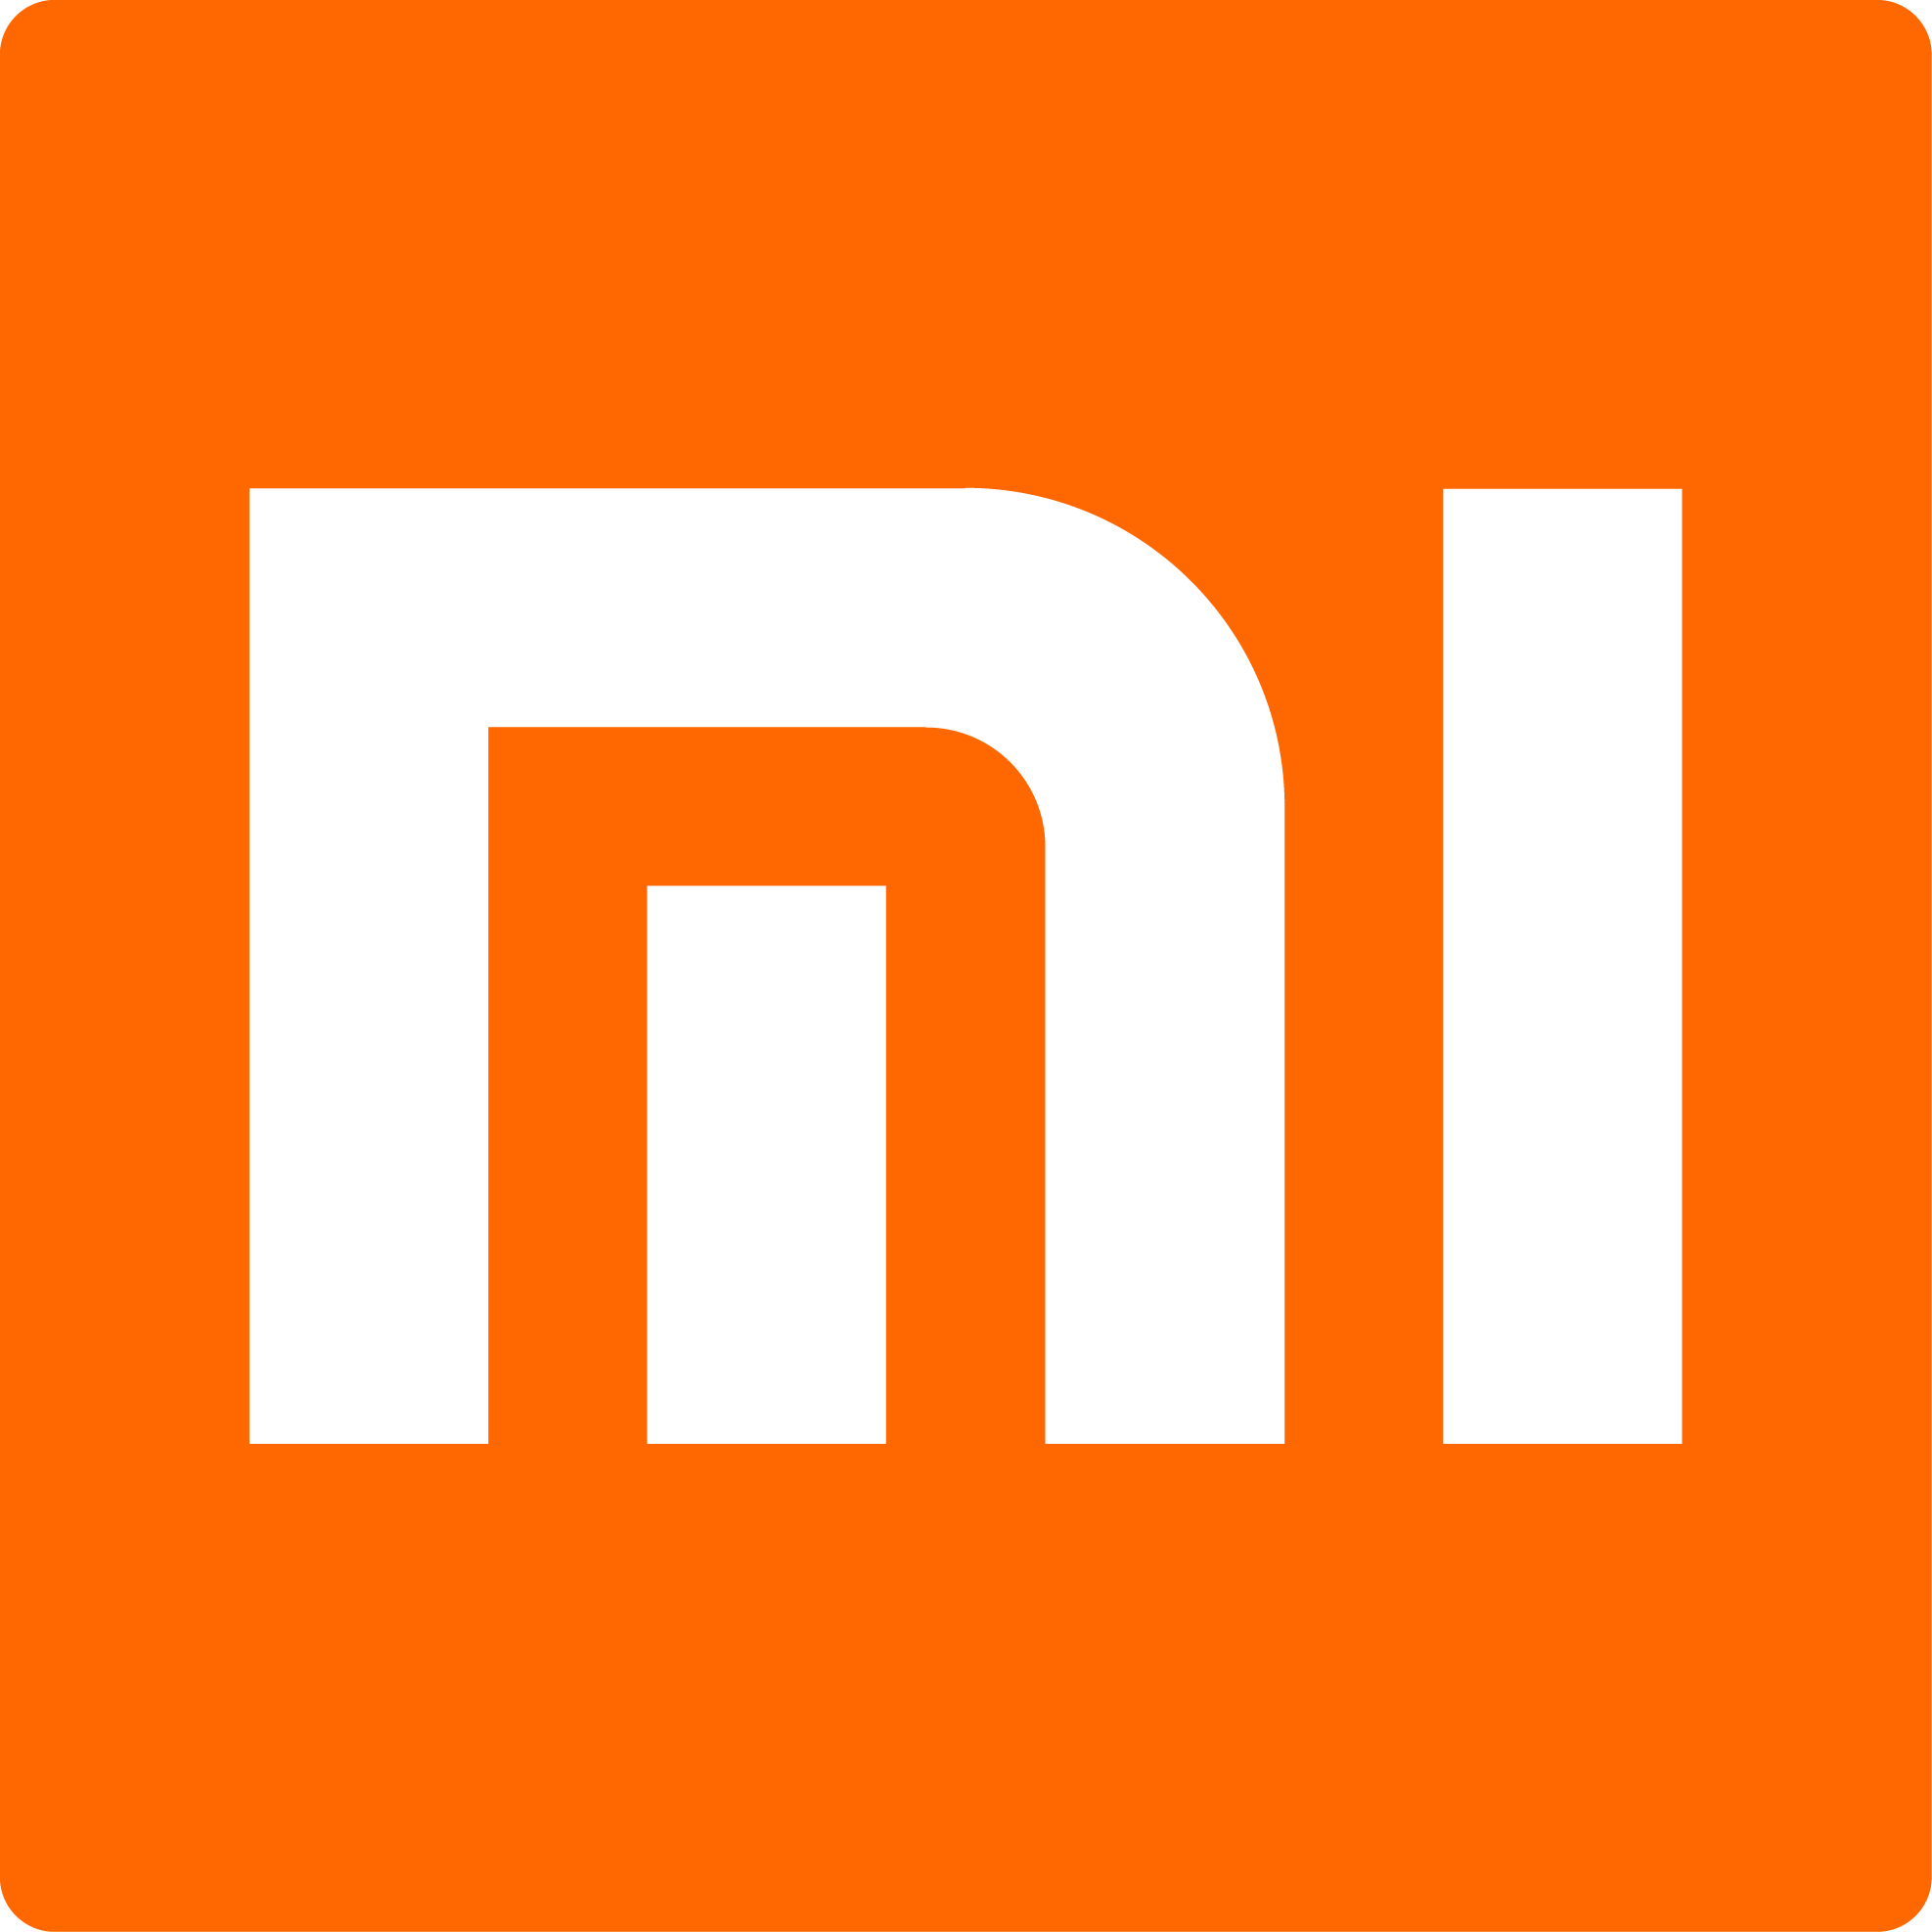 Xiaomi Tablet PCs